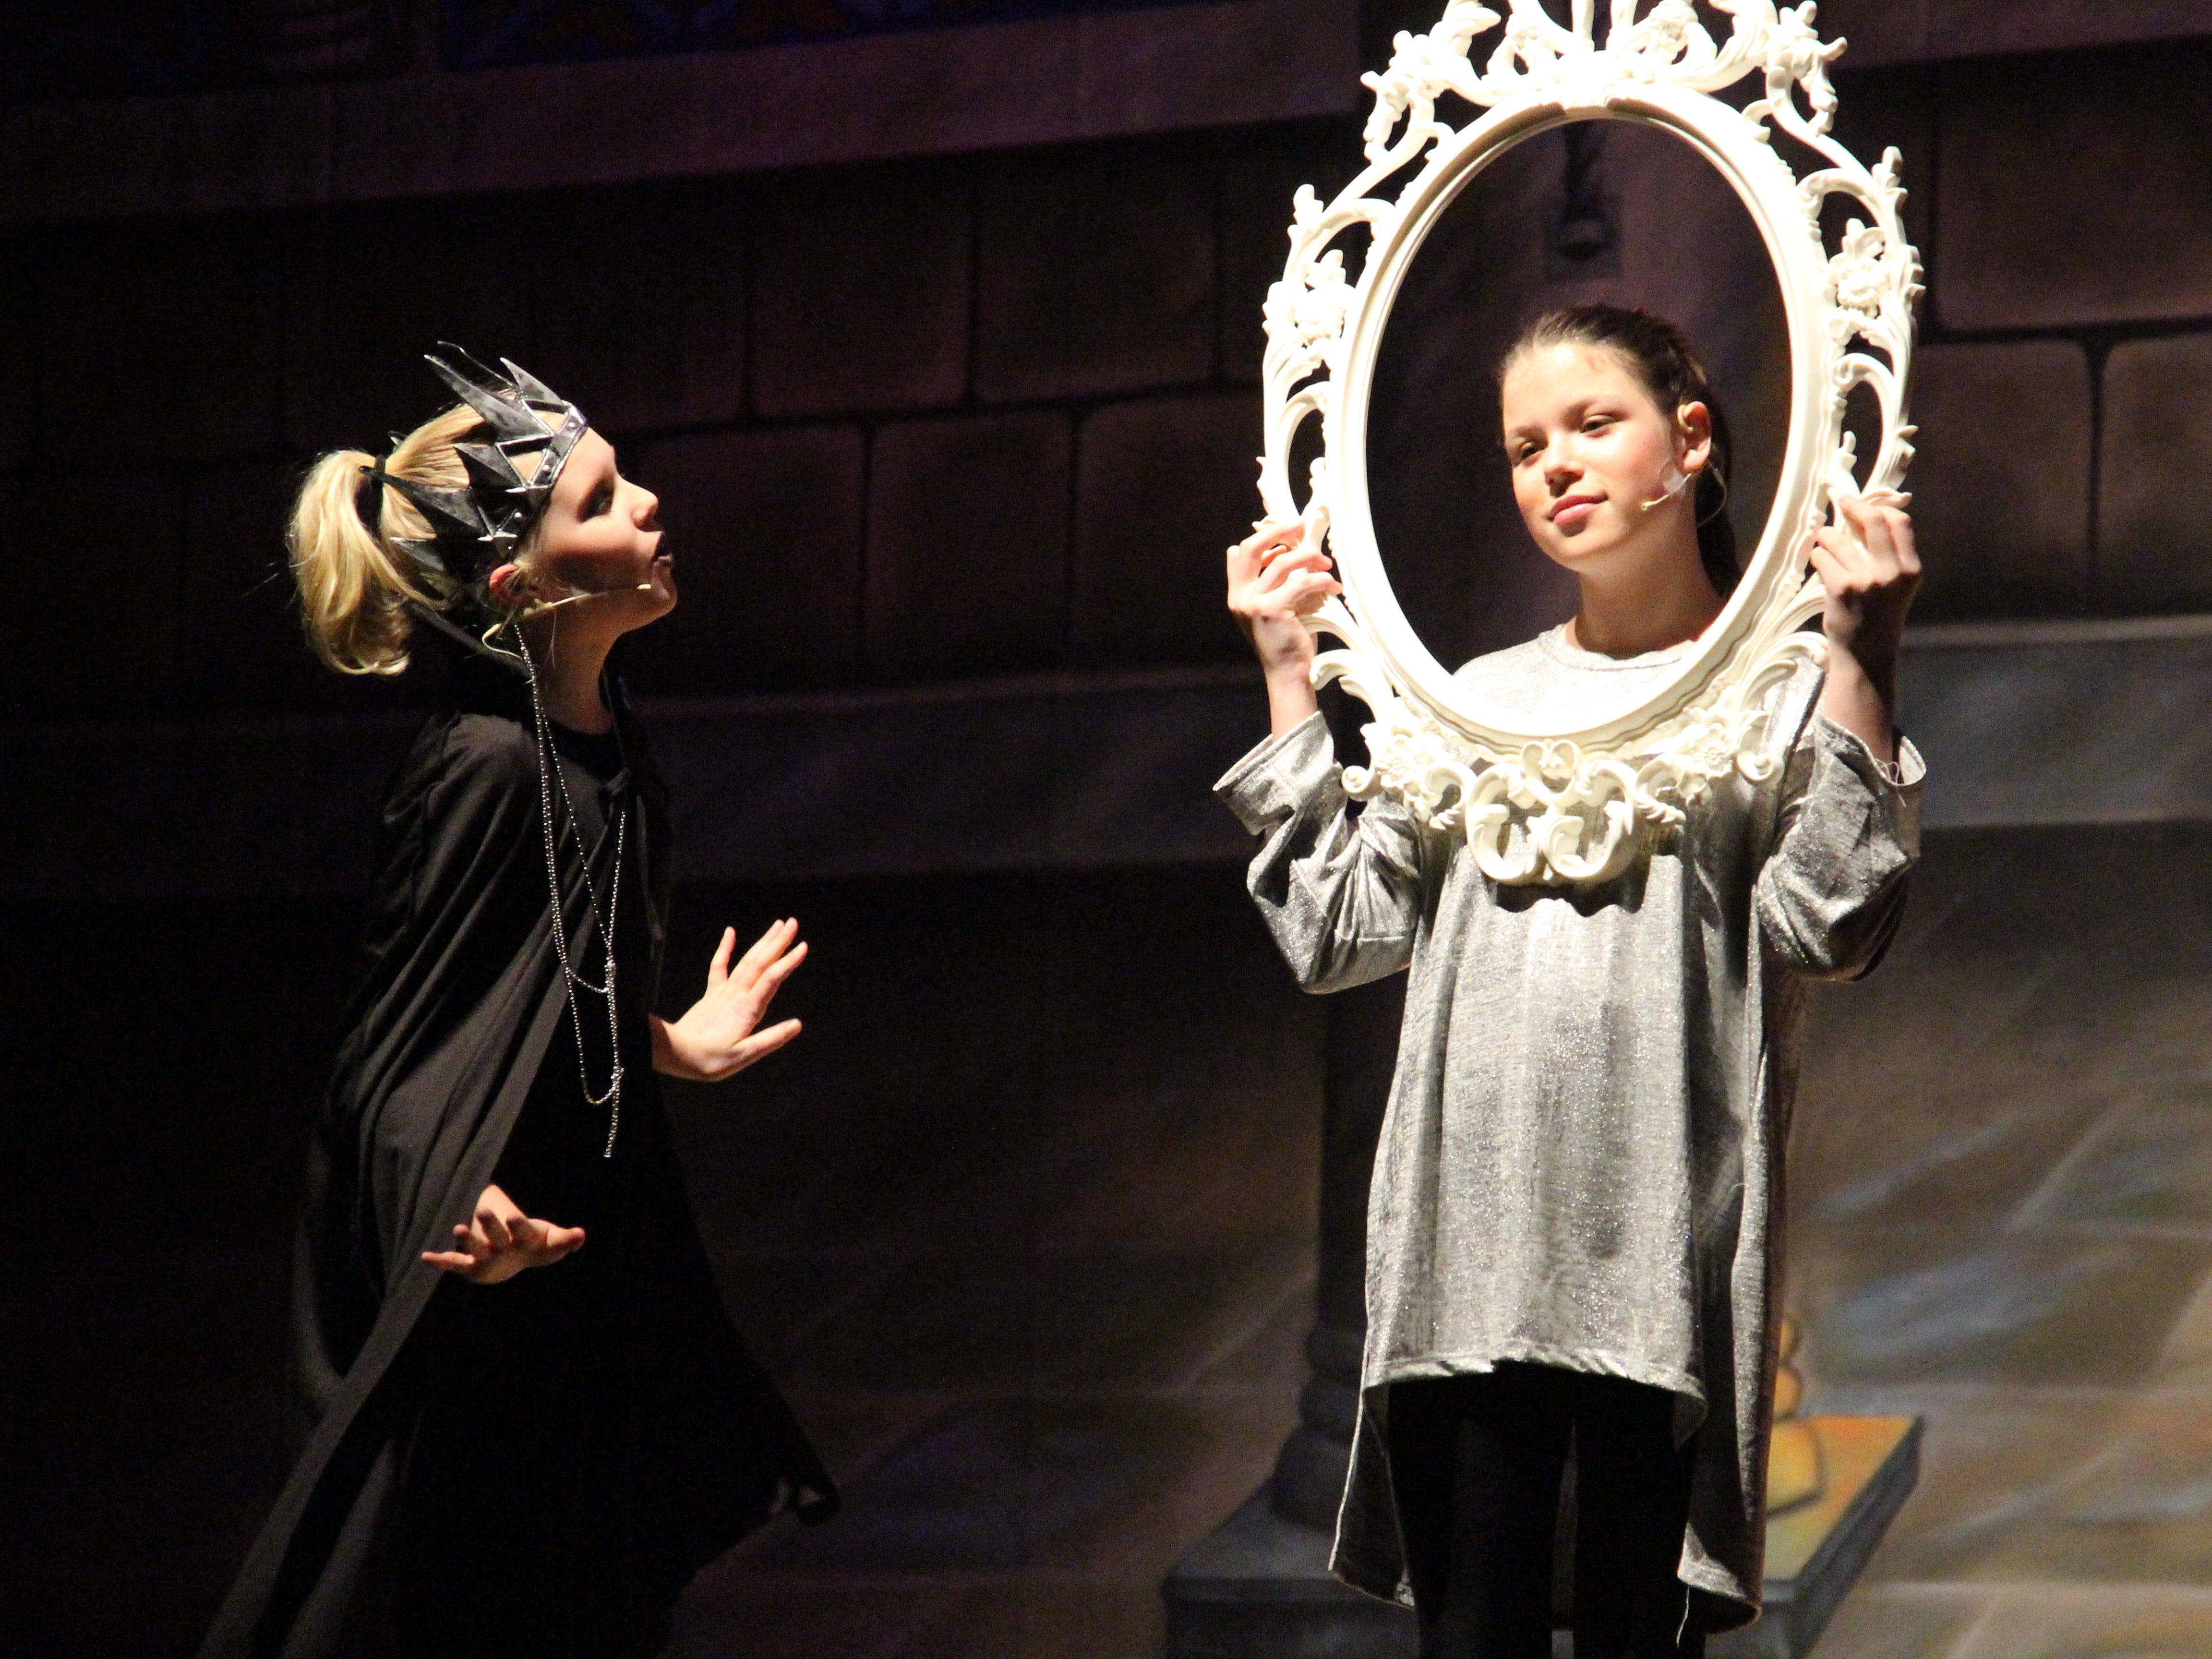 """Julia Pearch, as the evil queen, asks the mirror, played by Emily Hypes, who the fairest in the land is in the Marion Palace Theatre's production of """"The Tale of Snow White,"""" an adaptation of the classic fairy tale. The production starts at 7:30 p.m. Friday and Saturday, Feb. 8 and 9 and at  2 p.m. Sunday, Feb. 10."""